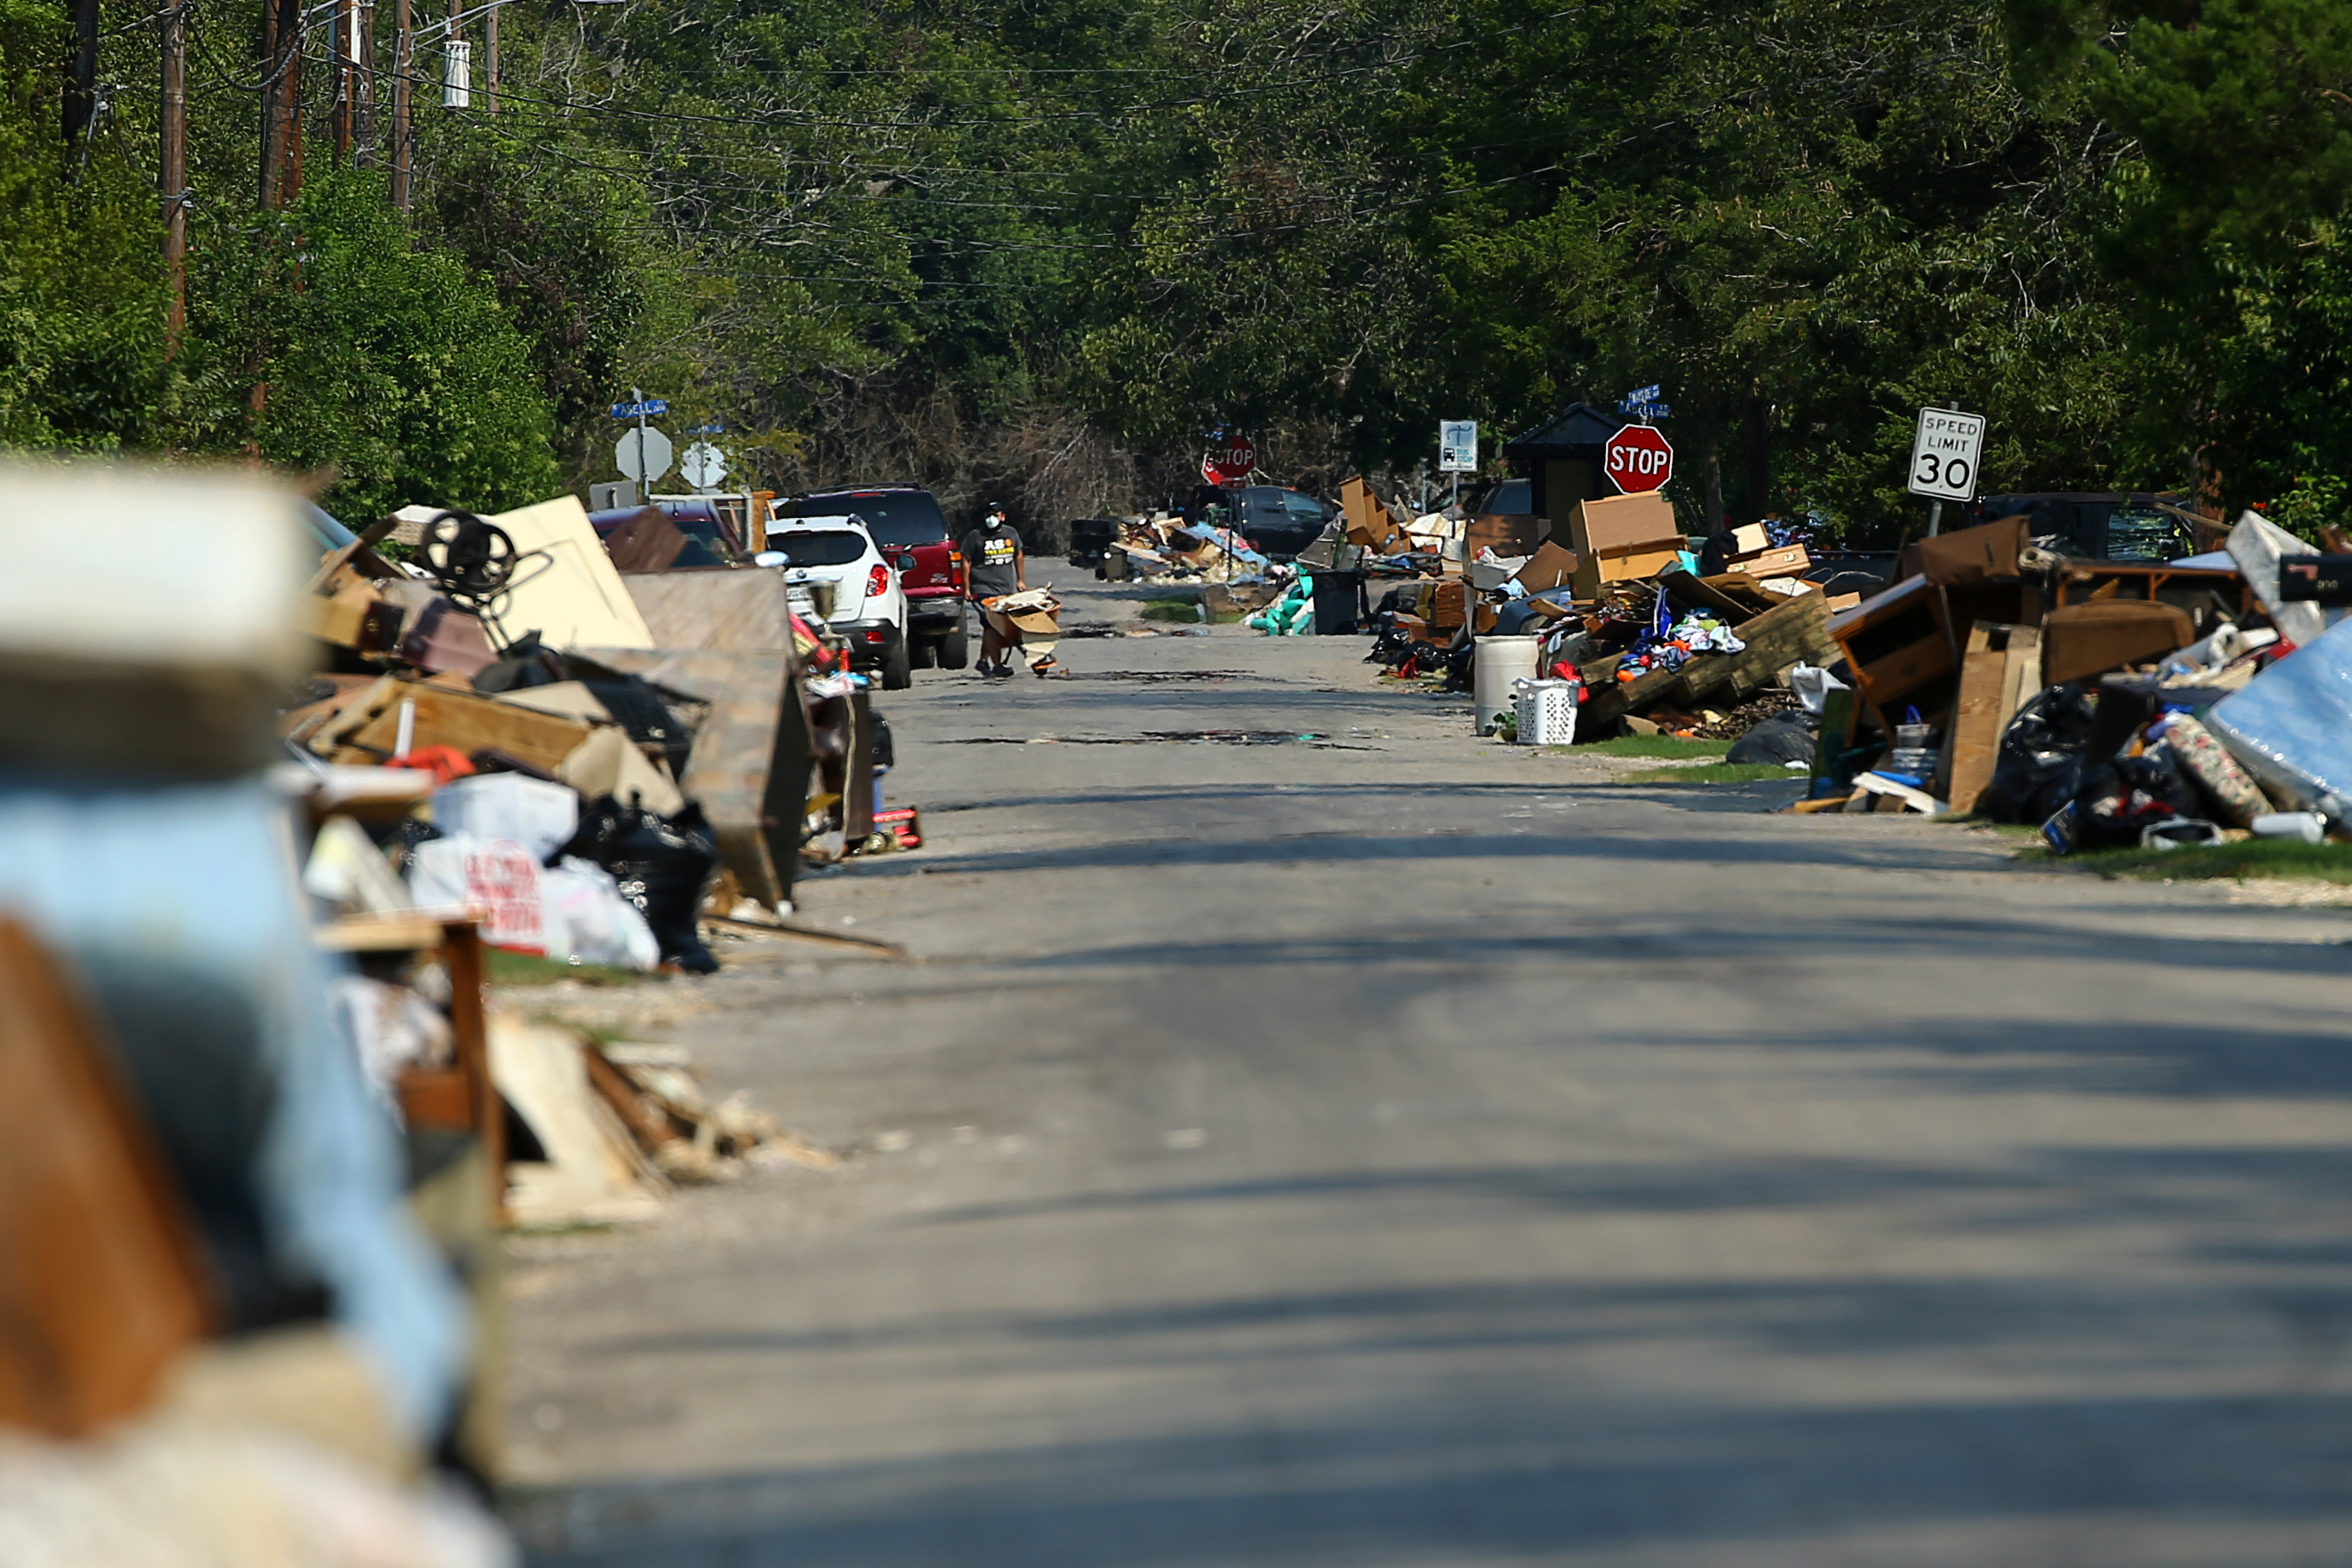 Flood-damaged contents from people's homes line the street following the aftermath of tropical storm Harvey in Wharton, Texas, U.S., September 6, 2017. REUTERS/Mike Blake